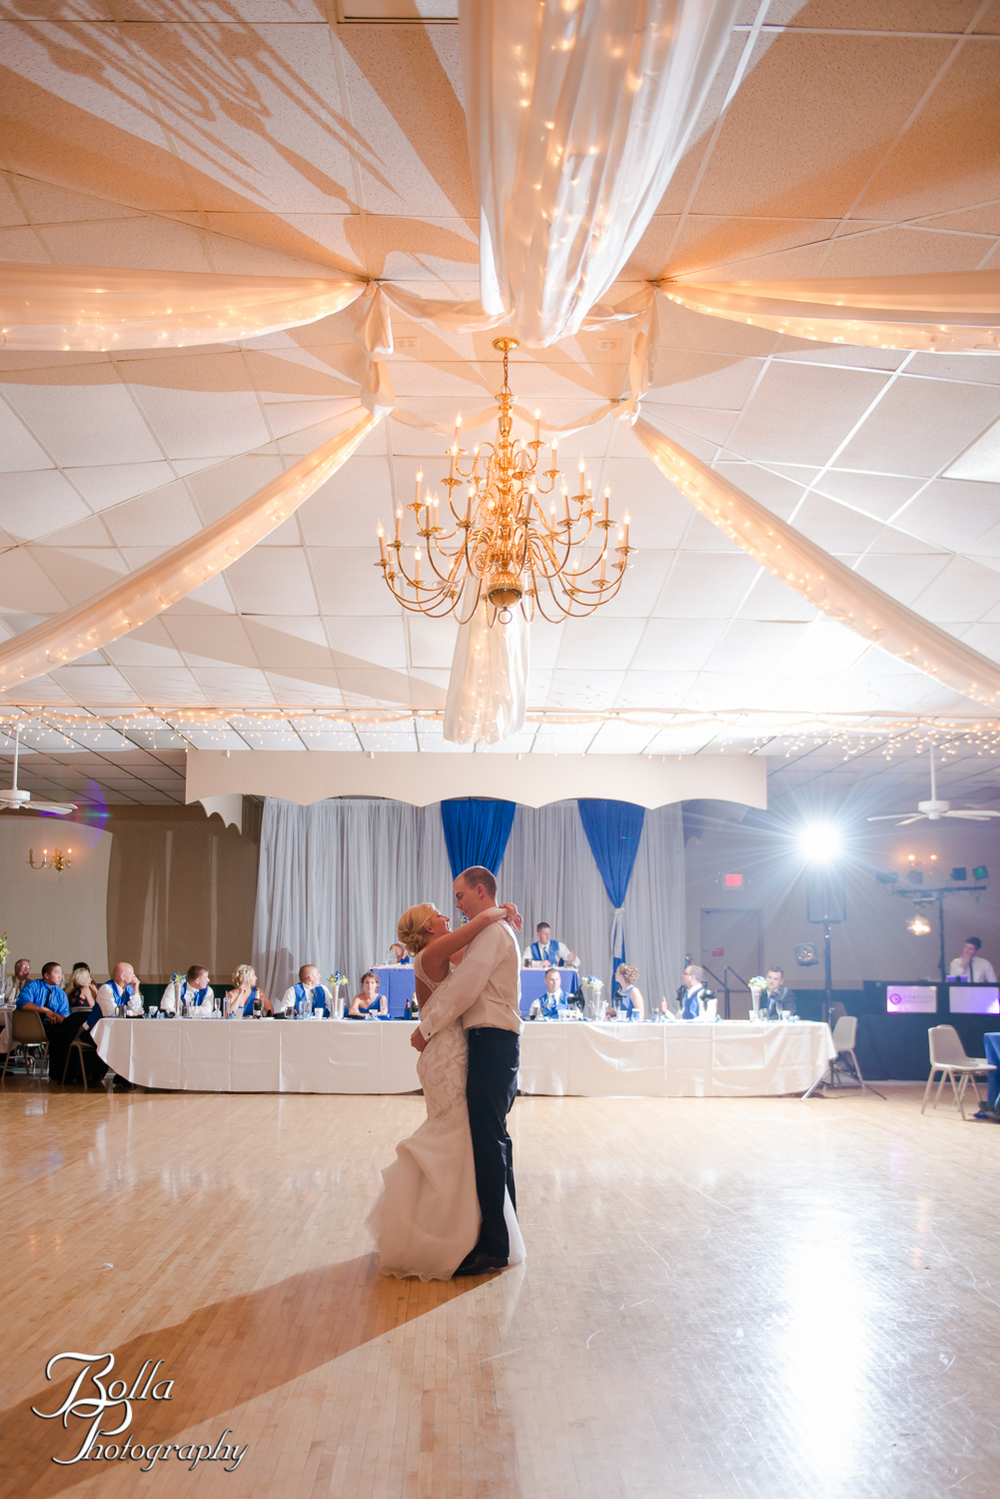 Bolla_Photography_St_Louis_wedding_photographer_Edwardsville_Highland-0427.jpg